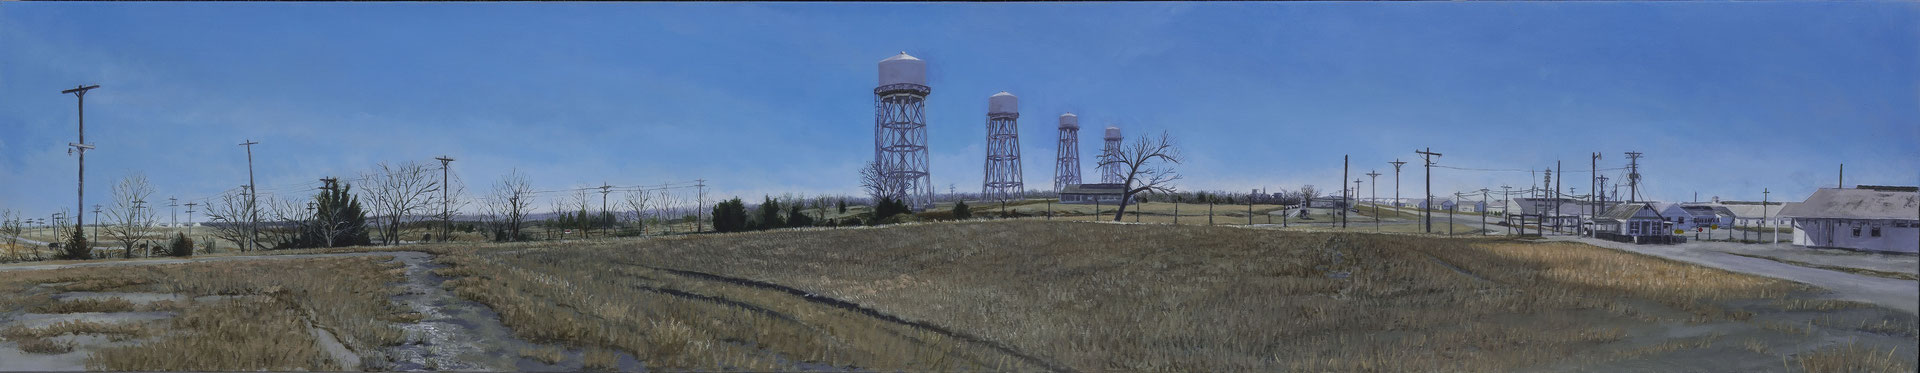 "Sunflower Ammunition Plant by Russell Horton, Oil on canvas, 13 ¼"" x 63"", $2500"